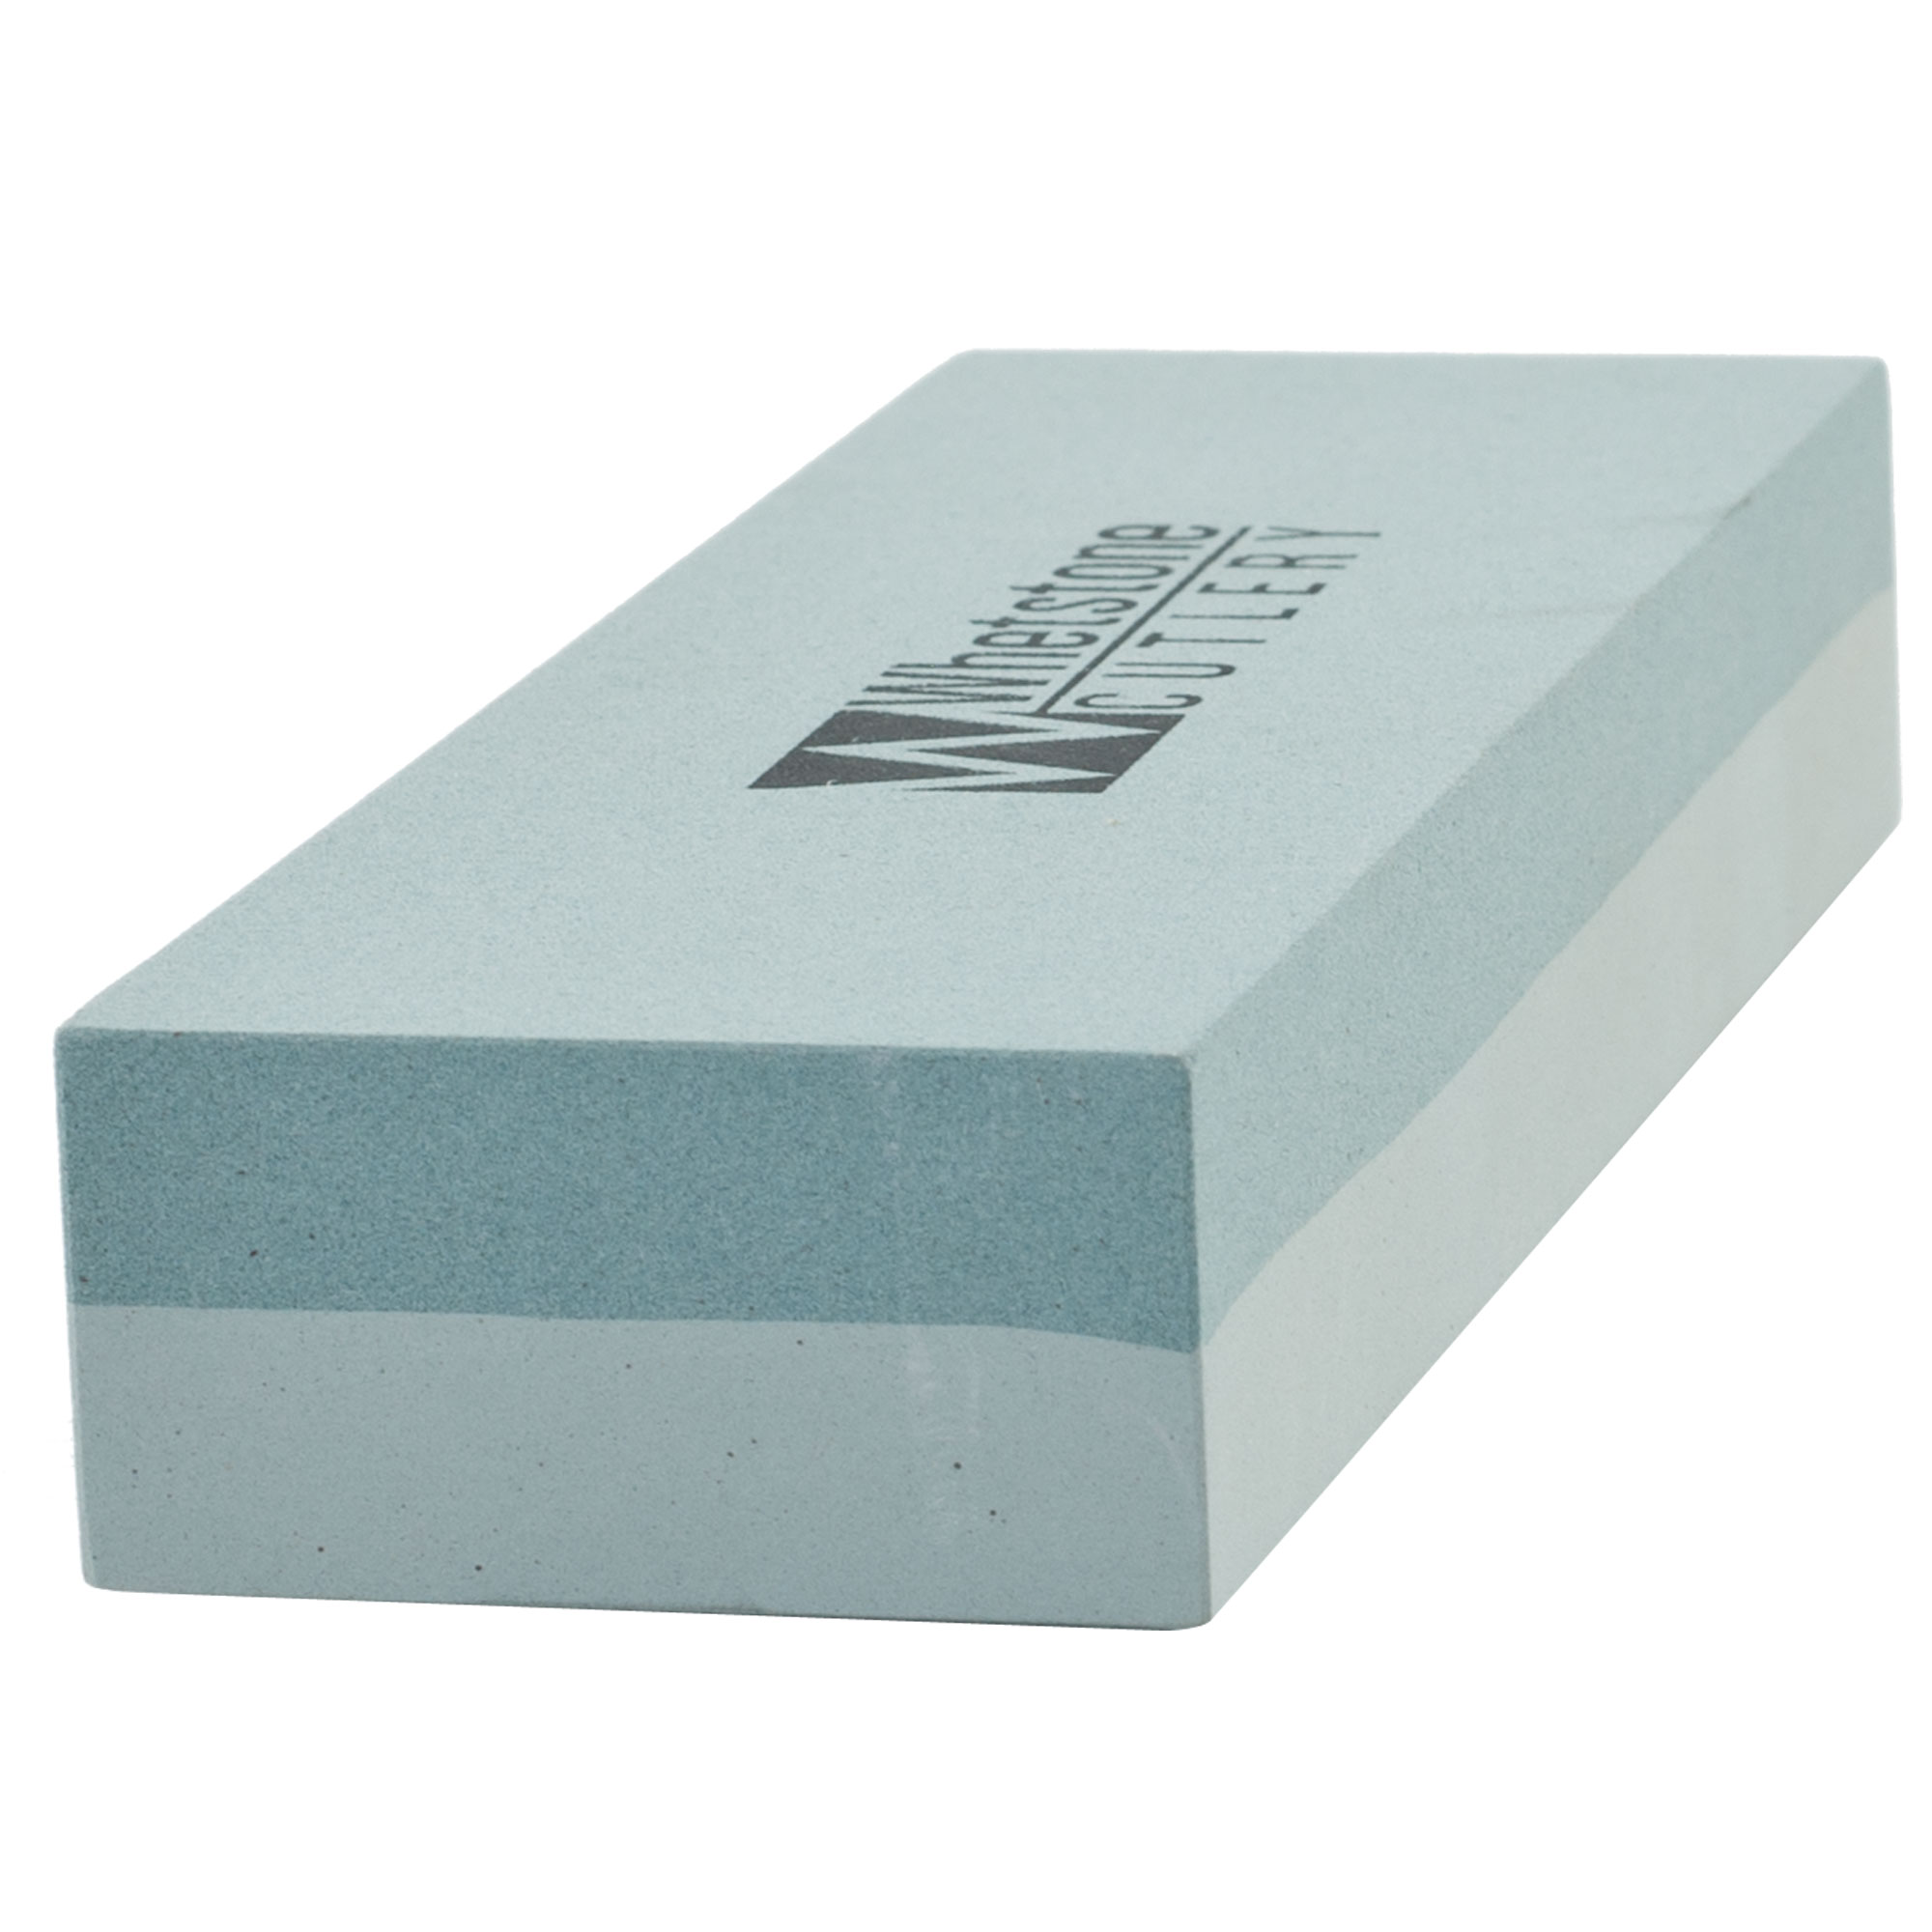 Two-sided Blade, Knife Sharpening Stone by Whetstone Cutlery by Trademark Global LLC